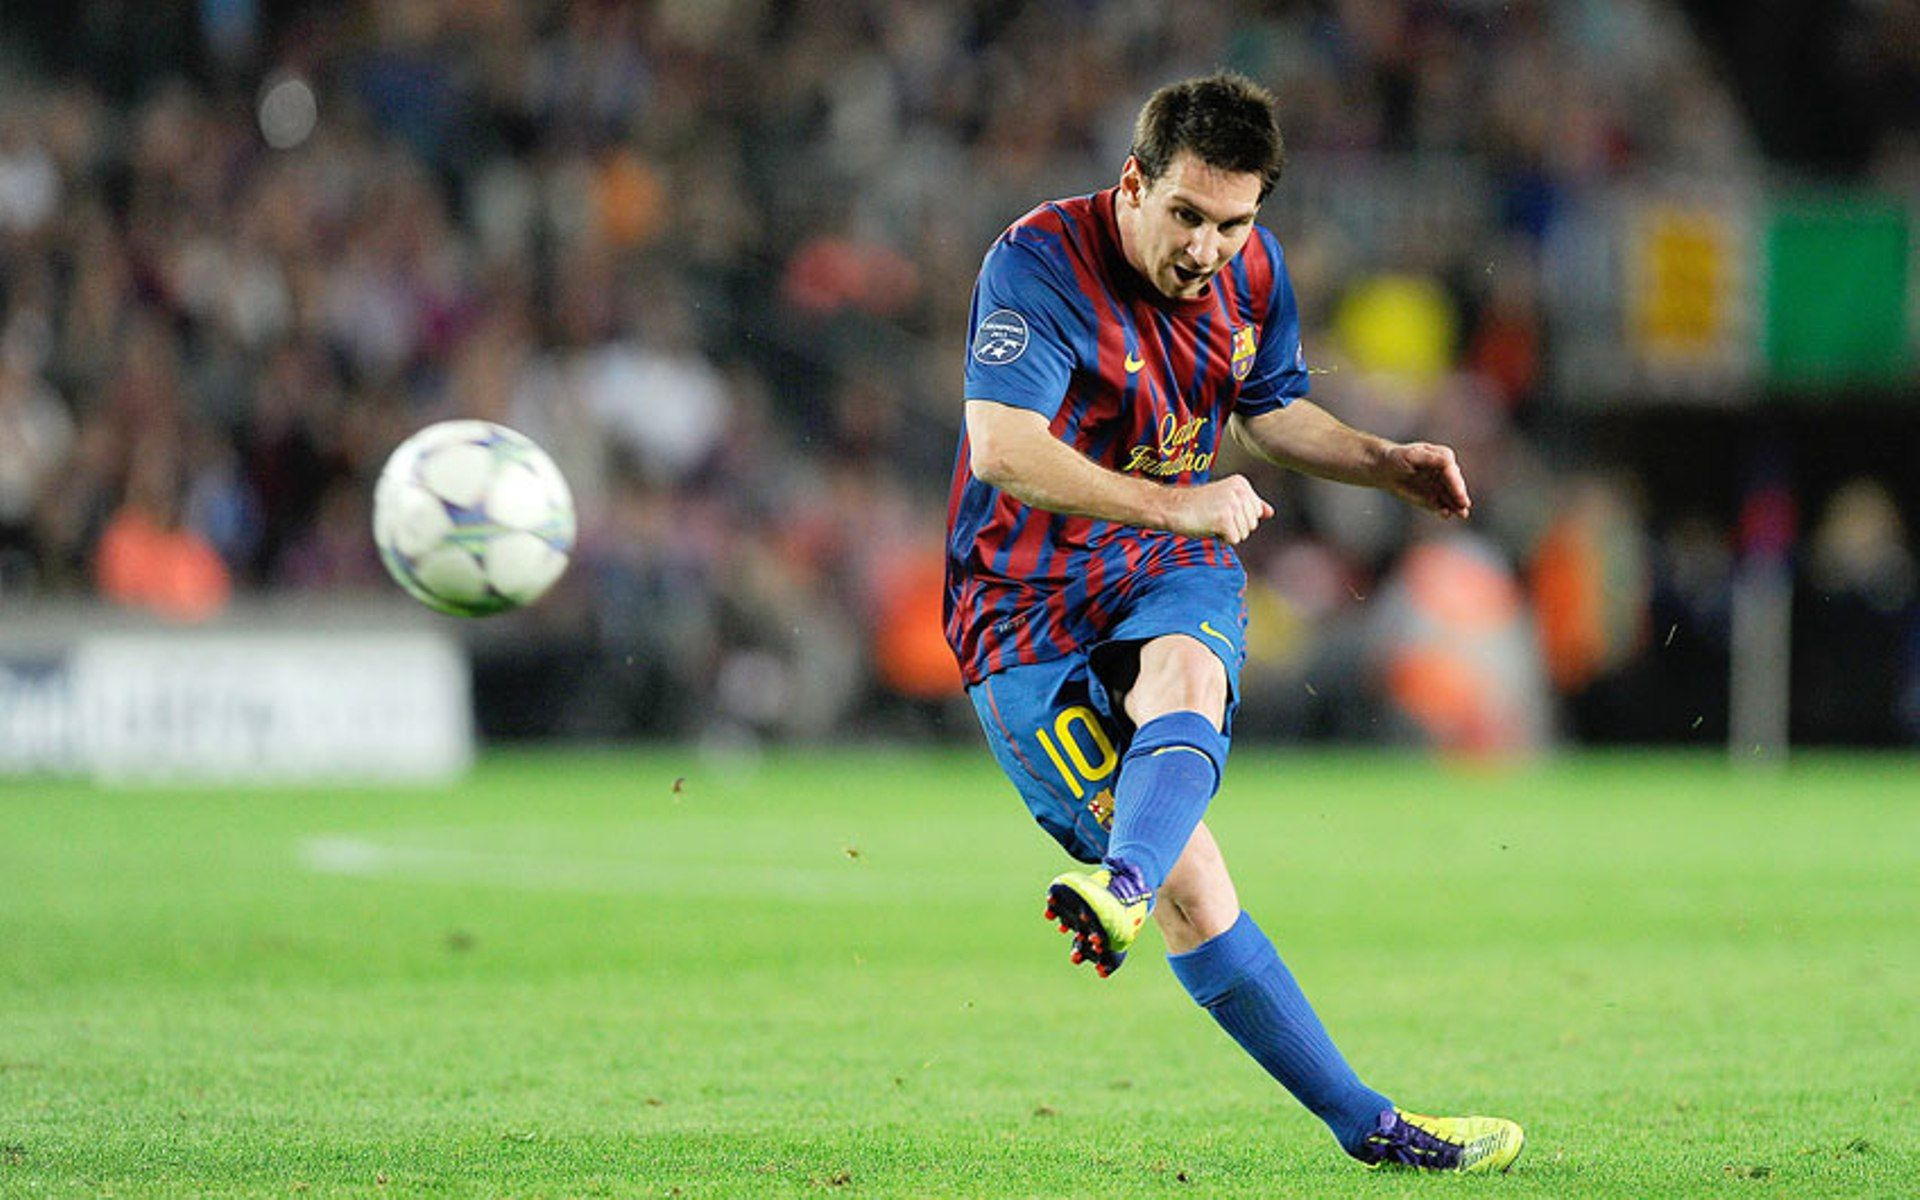 Lionel Messi Shooting Sport Wallpapers Hd Lionel Messi Lionel Messi Posters Messi